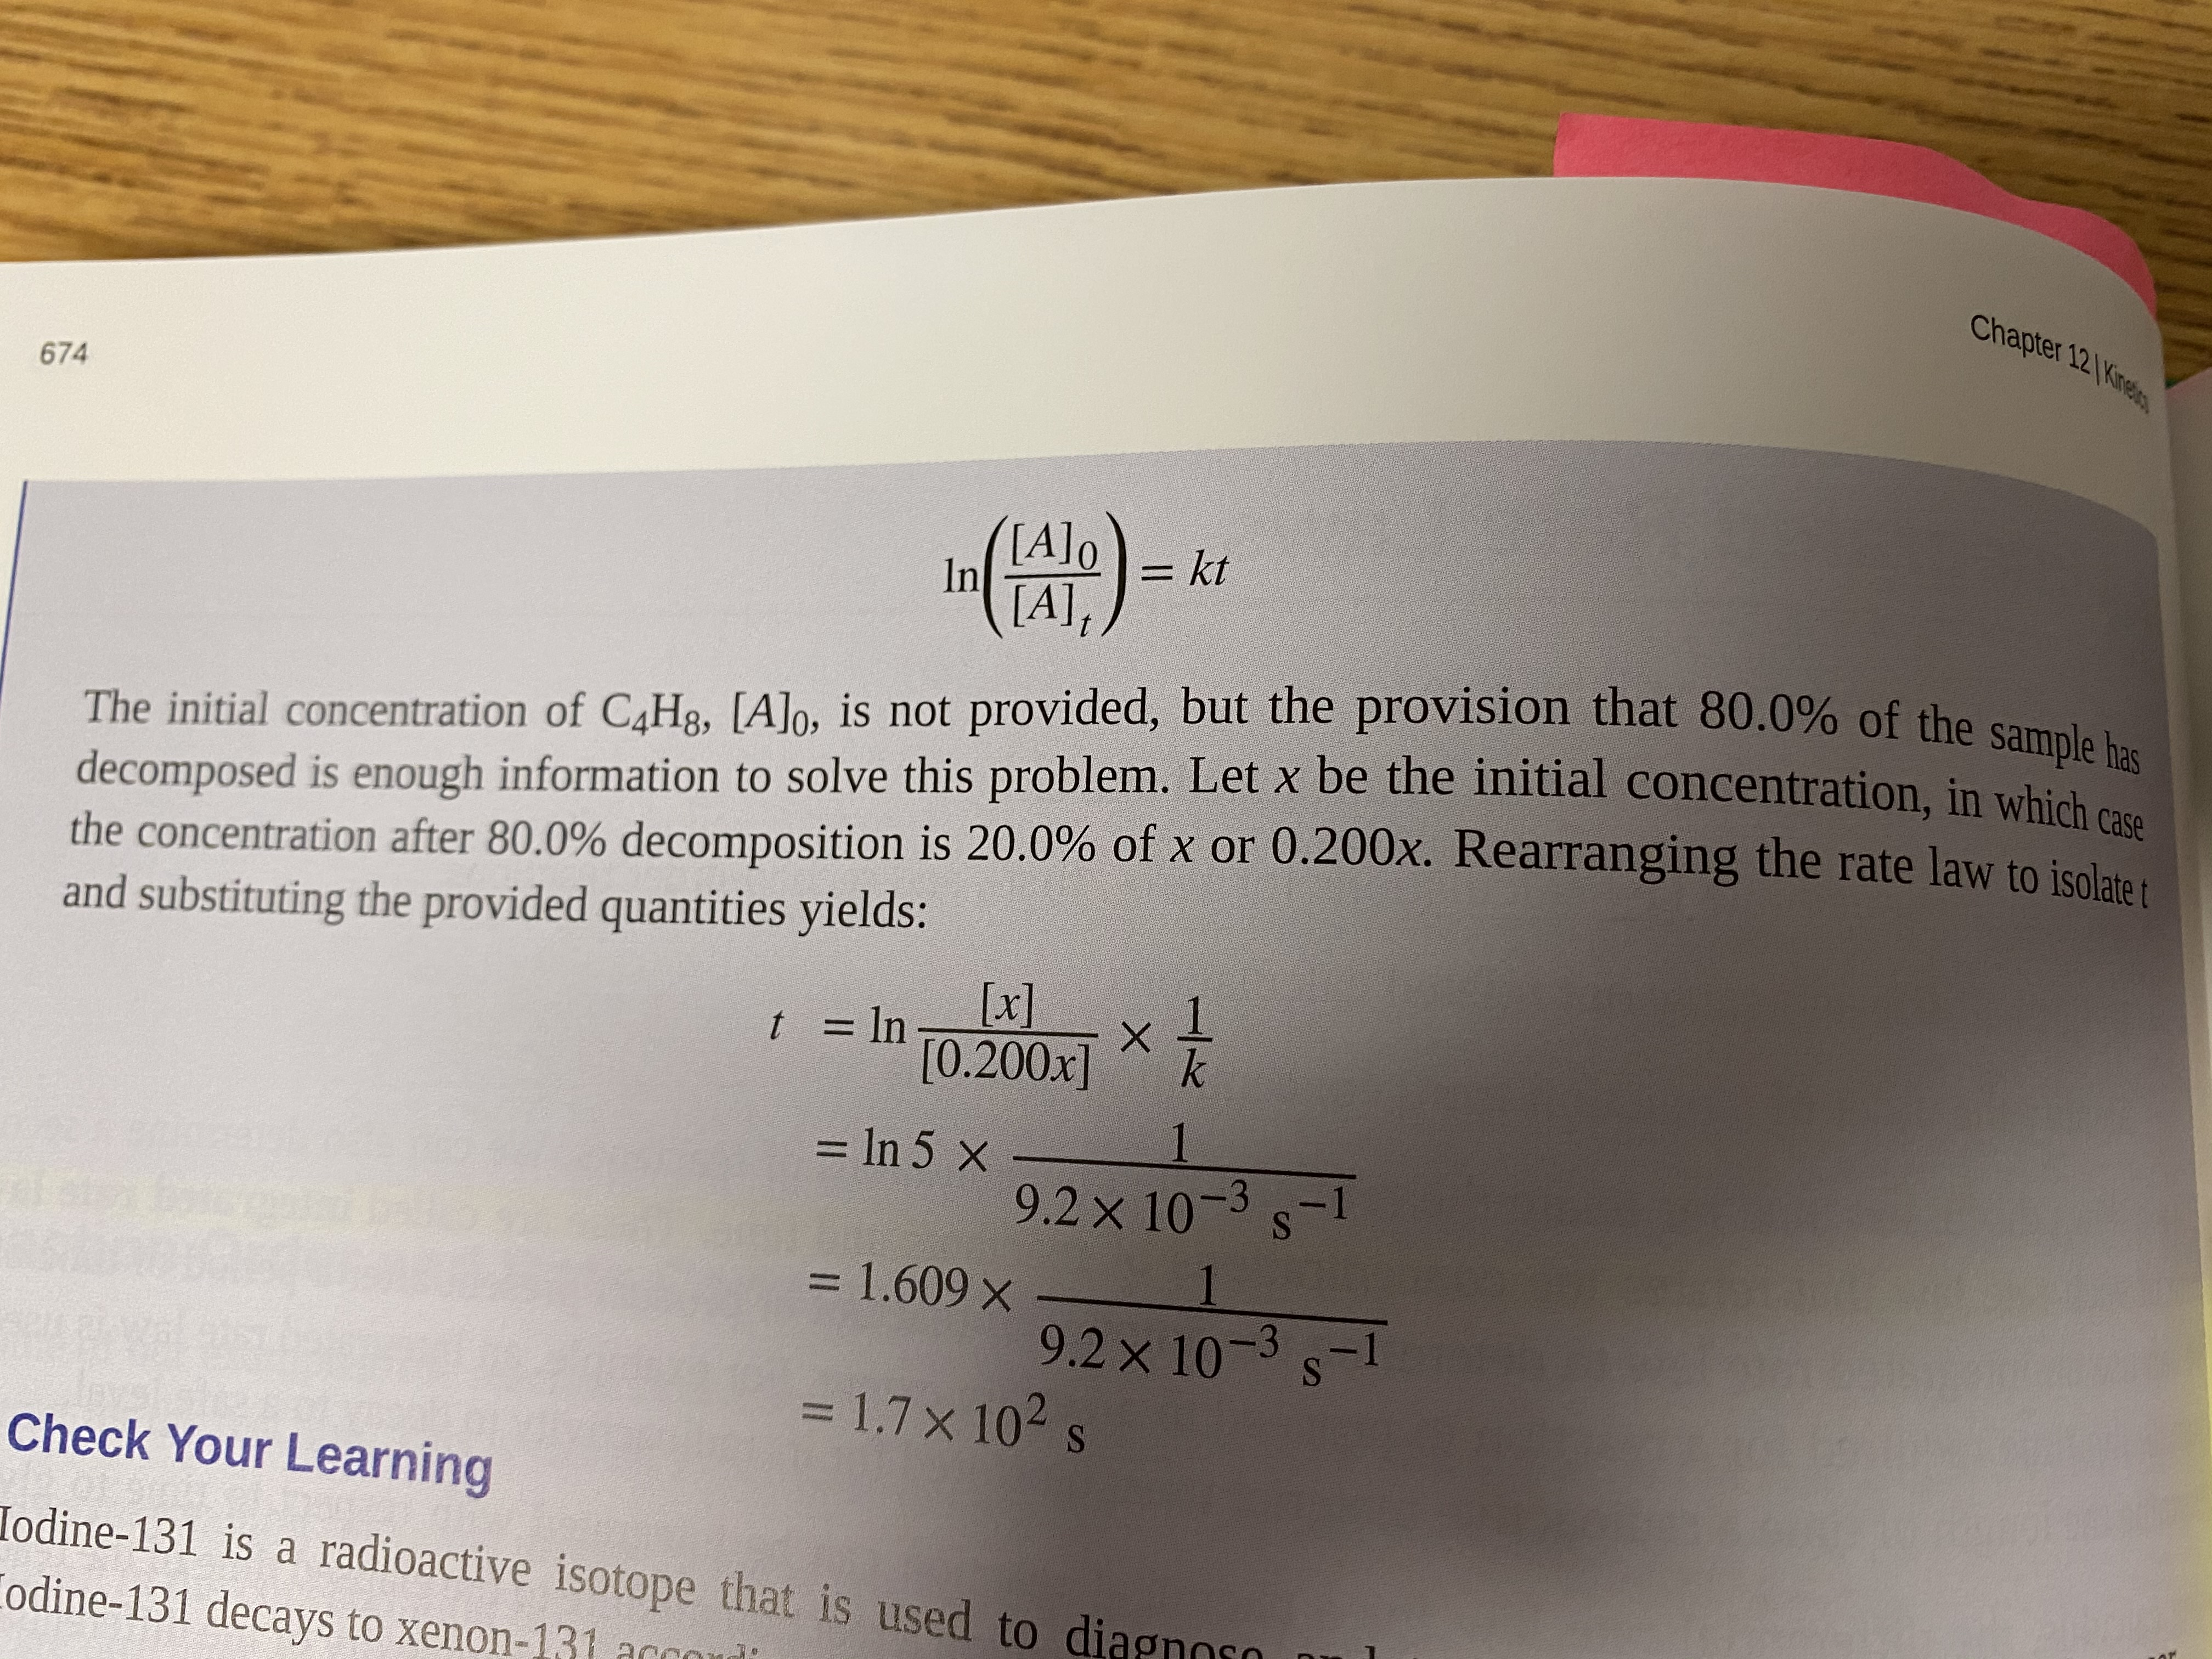 Chapter 12 Kine 674 () [A]o = kt %3D In [A], The initial concentration of C4H3, [A]o, is not provided, but the provision that 80.0% of the sample h decomposed is enough information to solve this problem. Let x be the initial concentration. in which e the concentration after 80.0% decomposition is 20.0% of x or 0.200x. Rearranging the rate law to isolata . and substituting the provided quantities yields: [x] [0.200x] t = ln %3D = In 5 x 1 %3D 9.2x 10-3 s-1 = 1.609 x 1 %D 9.2 x 10-3 s-1 = 1.7x 102 s %3D Check Your Learning Iodine-131 is a radioactive isotope that is used to dia Codine-131 decays to xenon-131